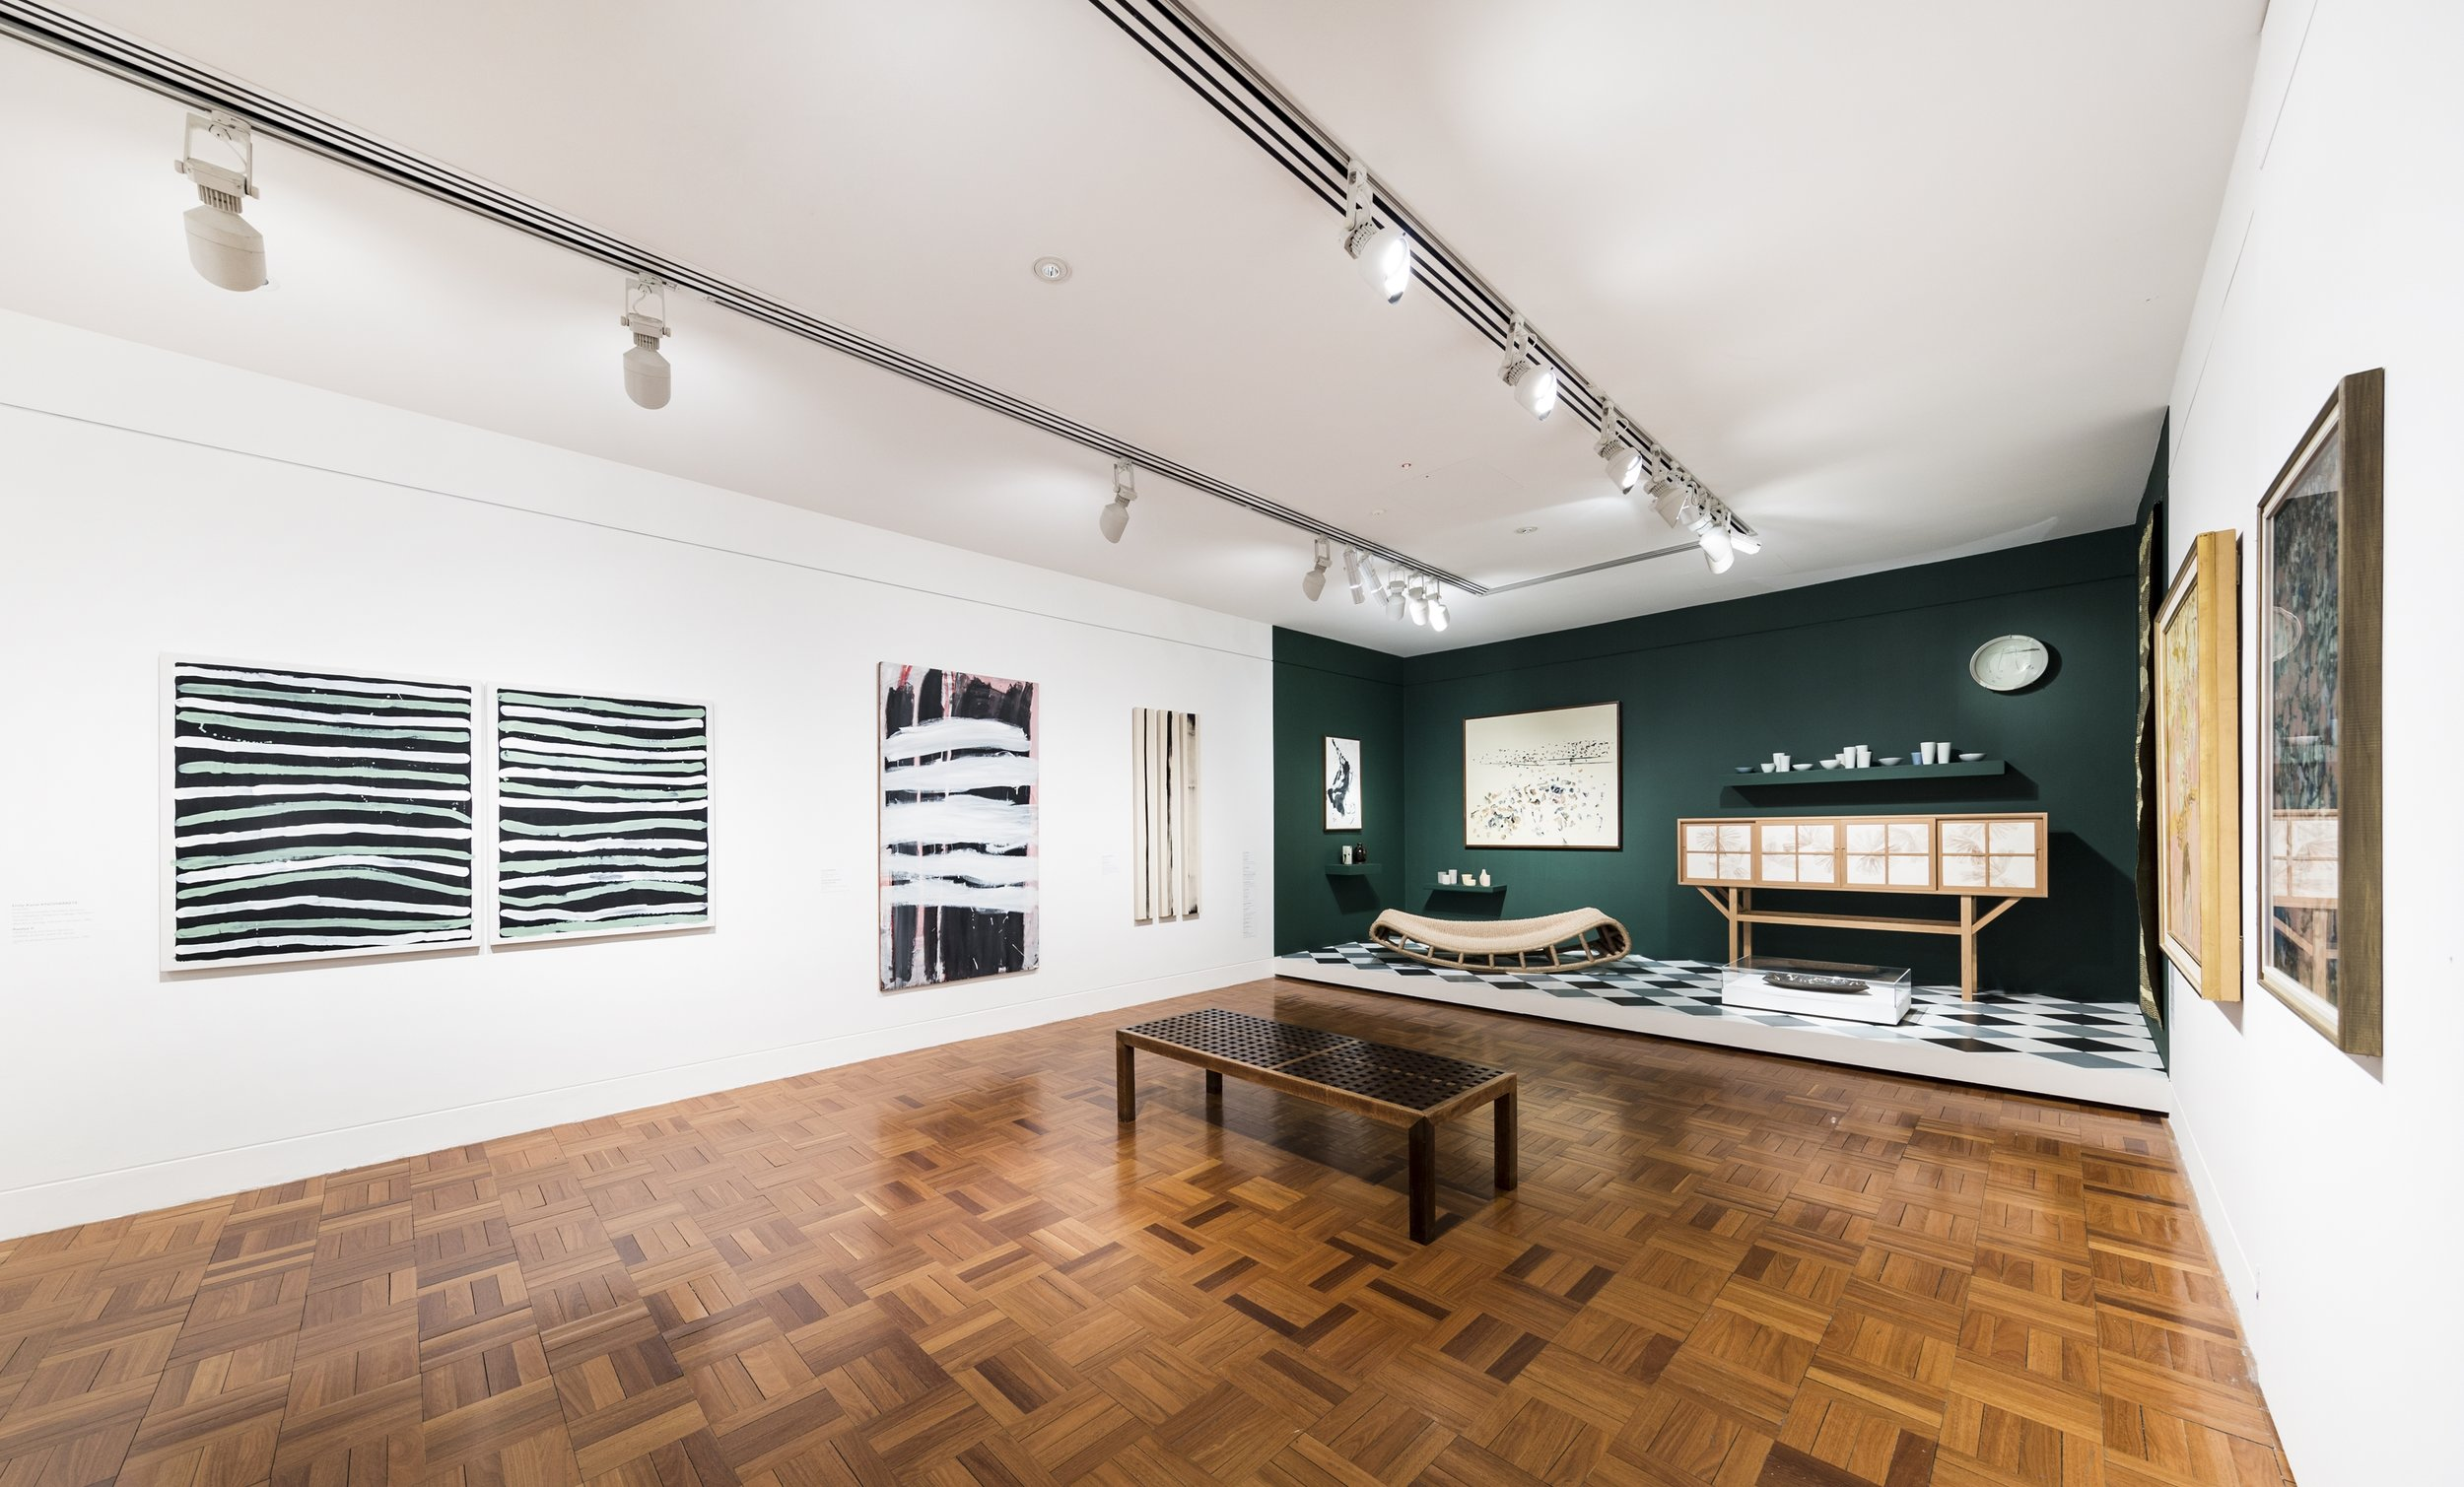 Installation view  You, me, us, them,  Art Gallery of South Australia, 2017